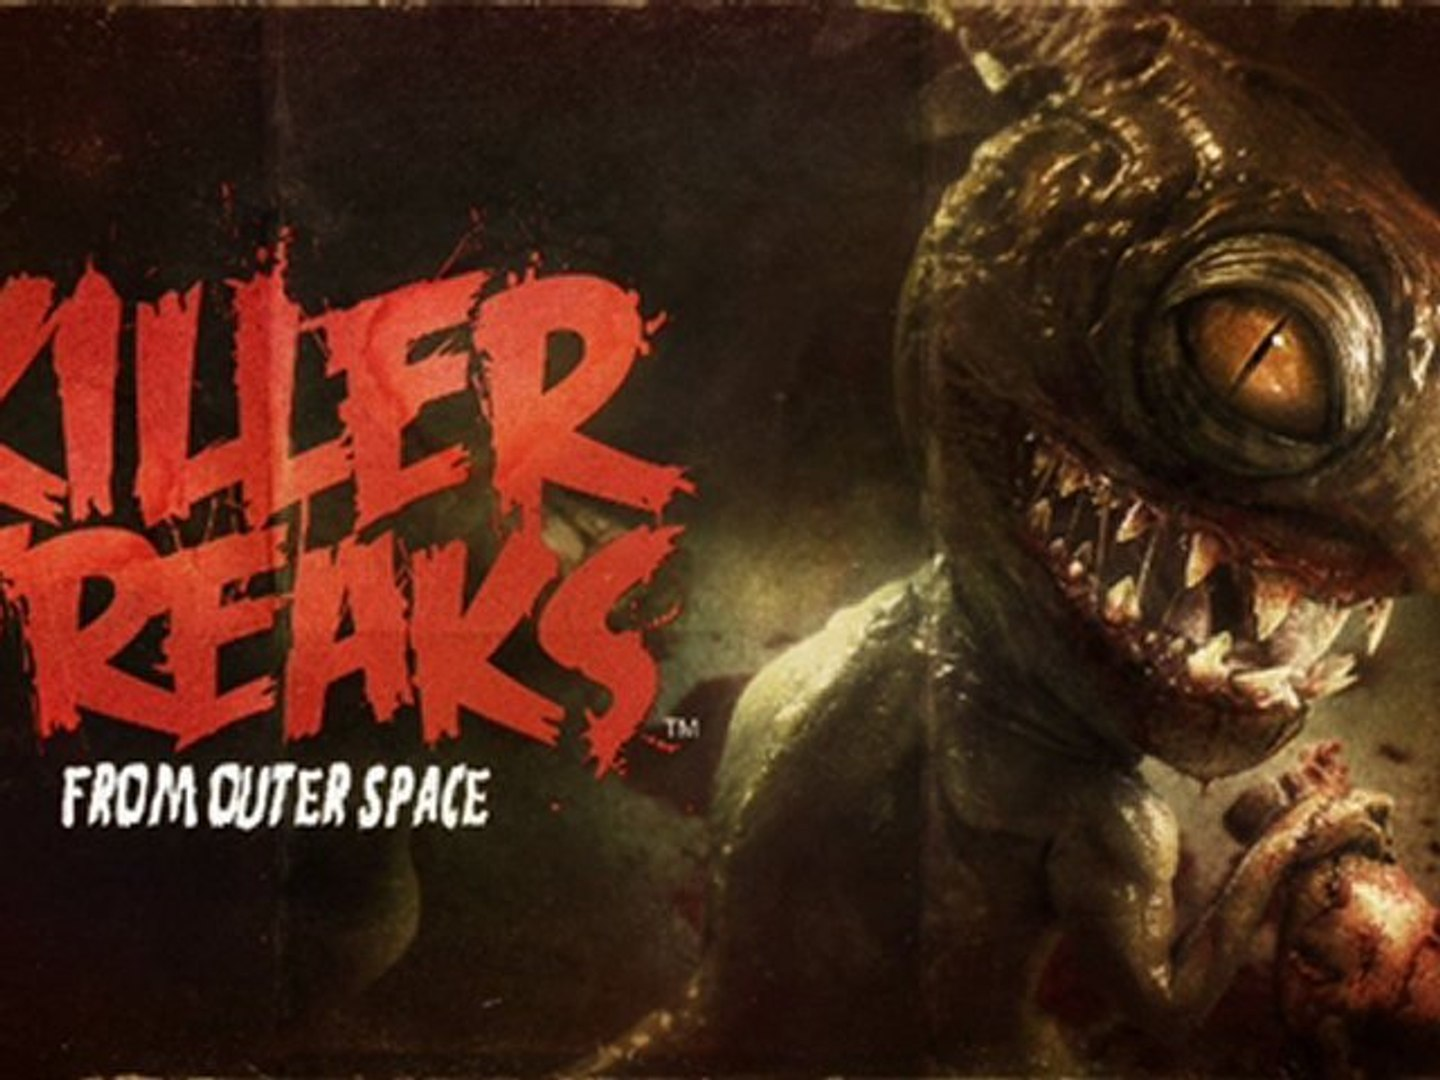 Killer Freaks From Outer Space (3 Key Arts)